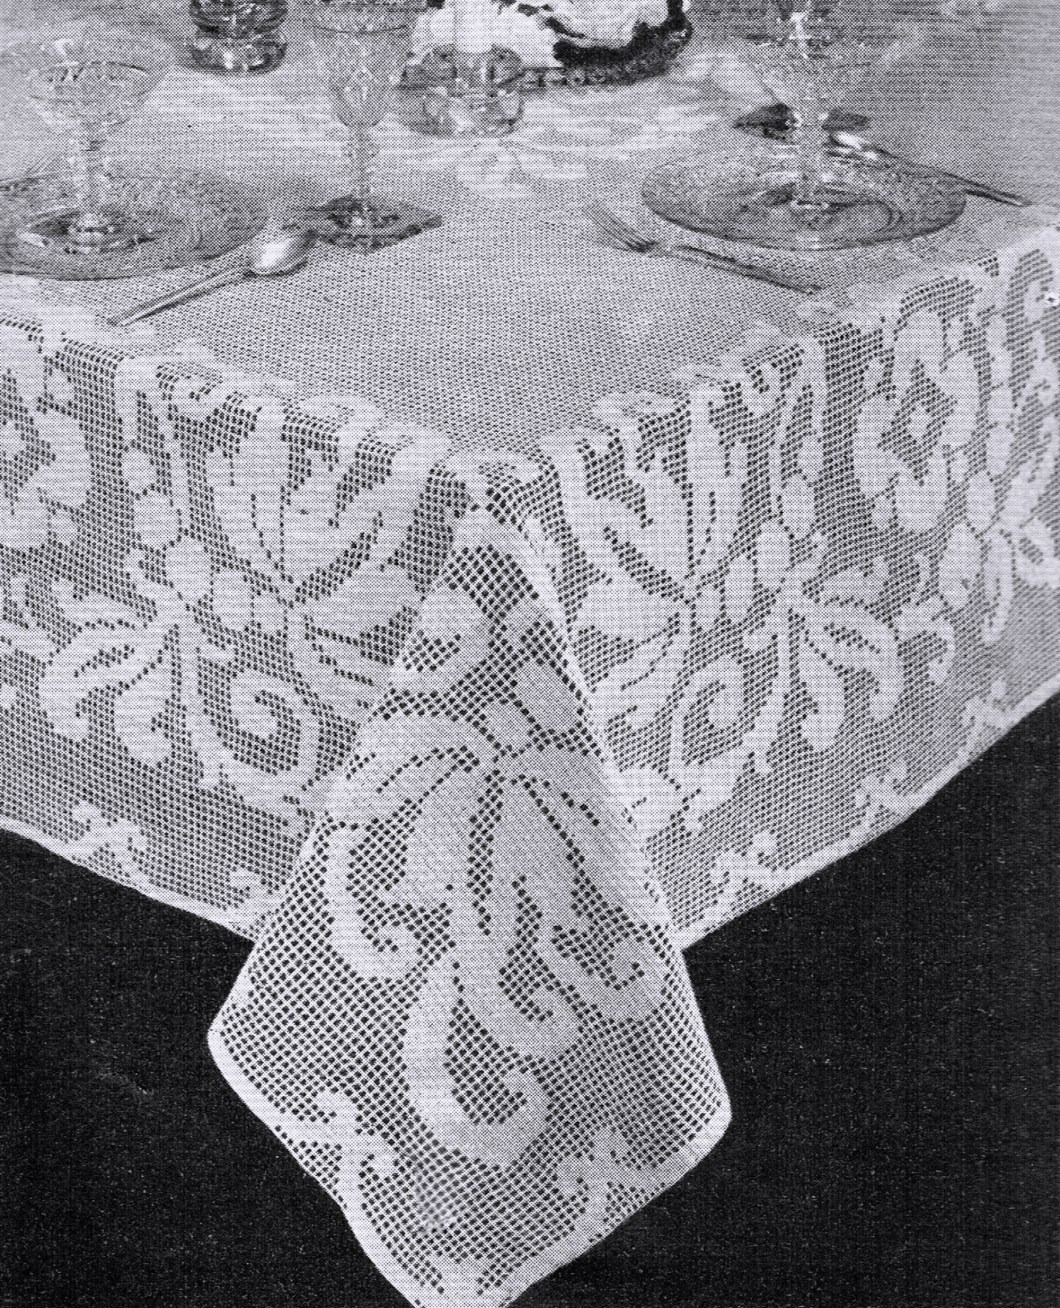 Free Filet Crochet Round Tablecloth Patterns Wallseat Co